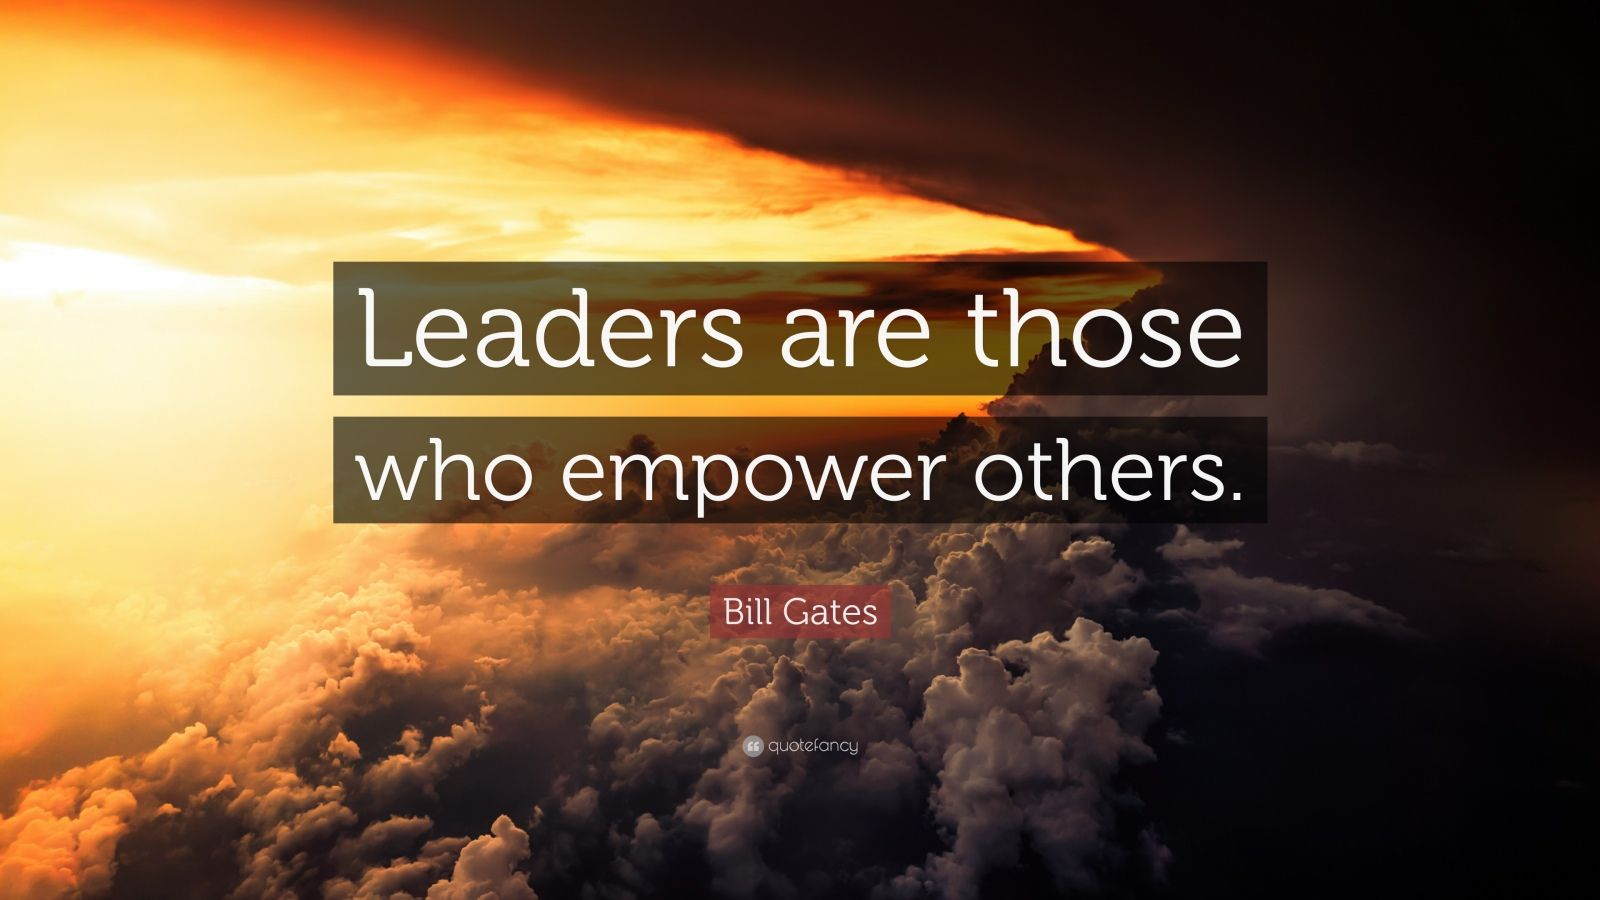 Mahatma Gandhi Wallpaper With Quotes Bill Gates Quote Leaders Are Those Who Empower Others